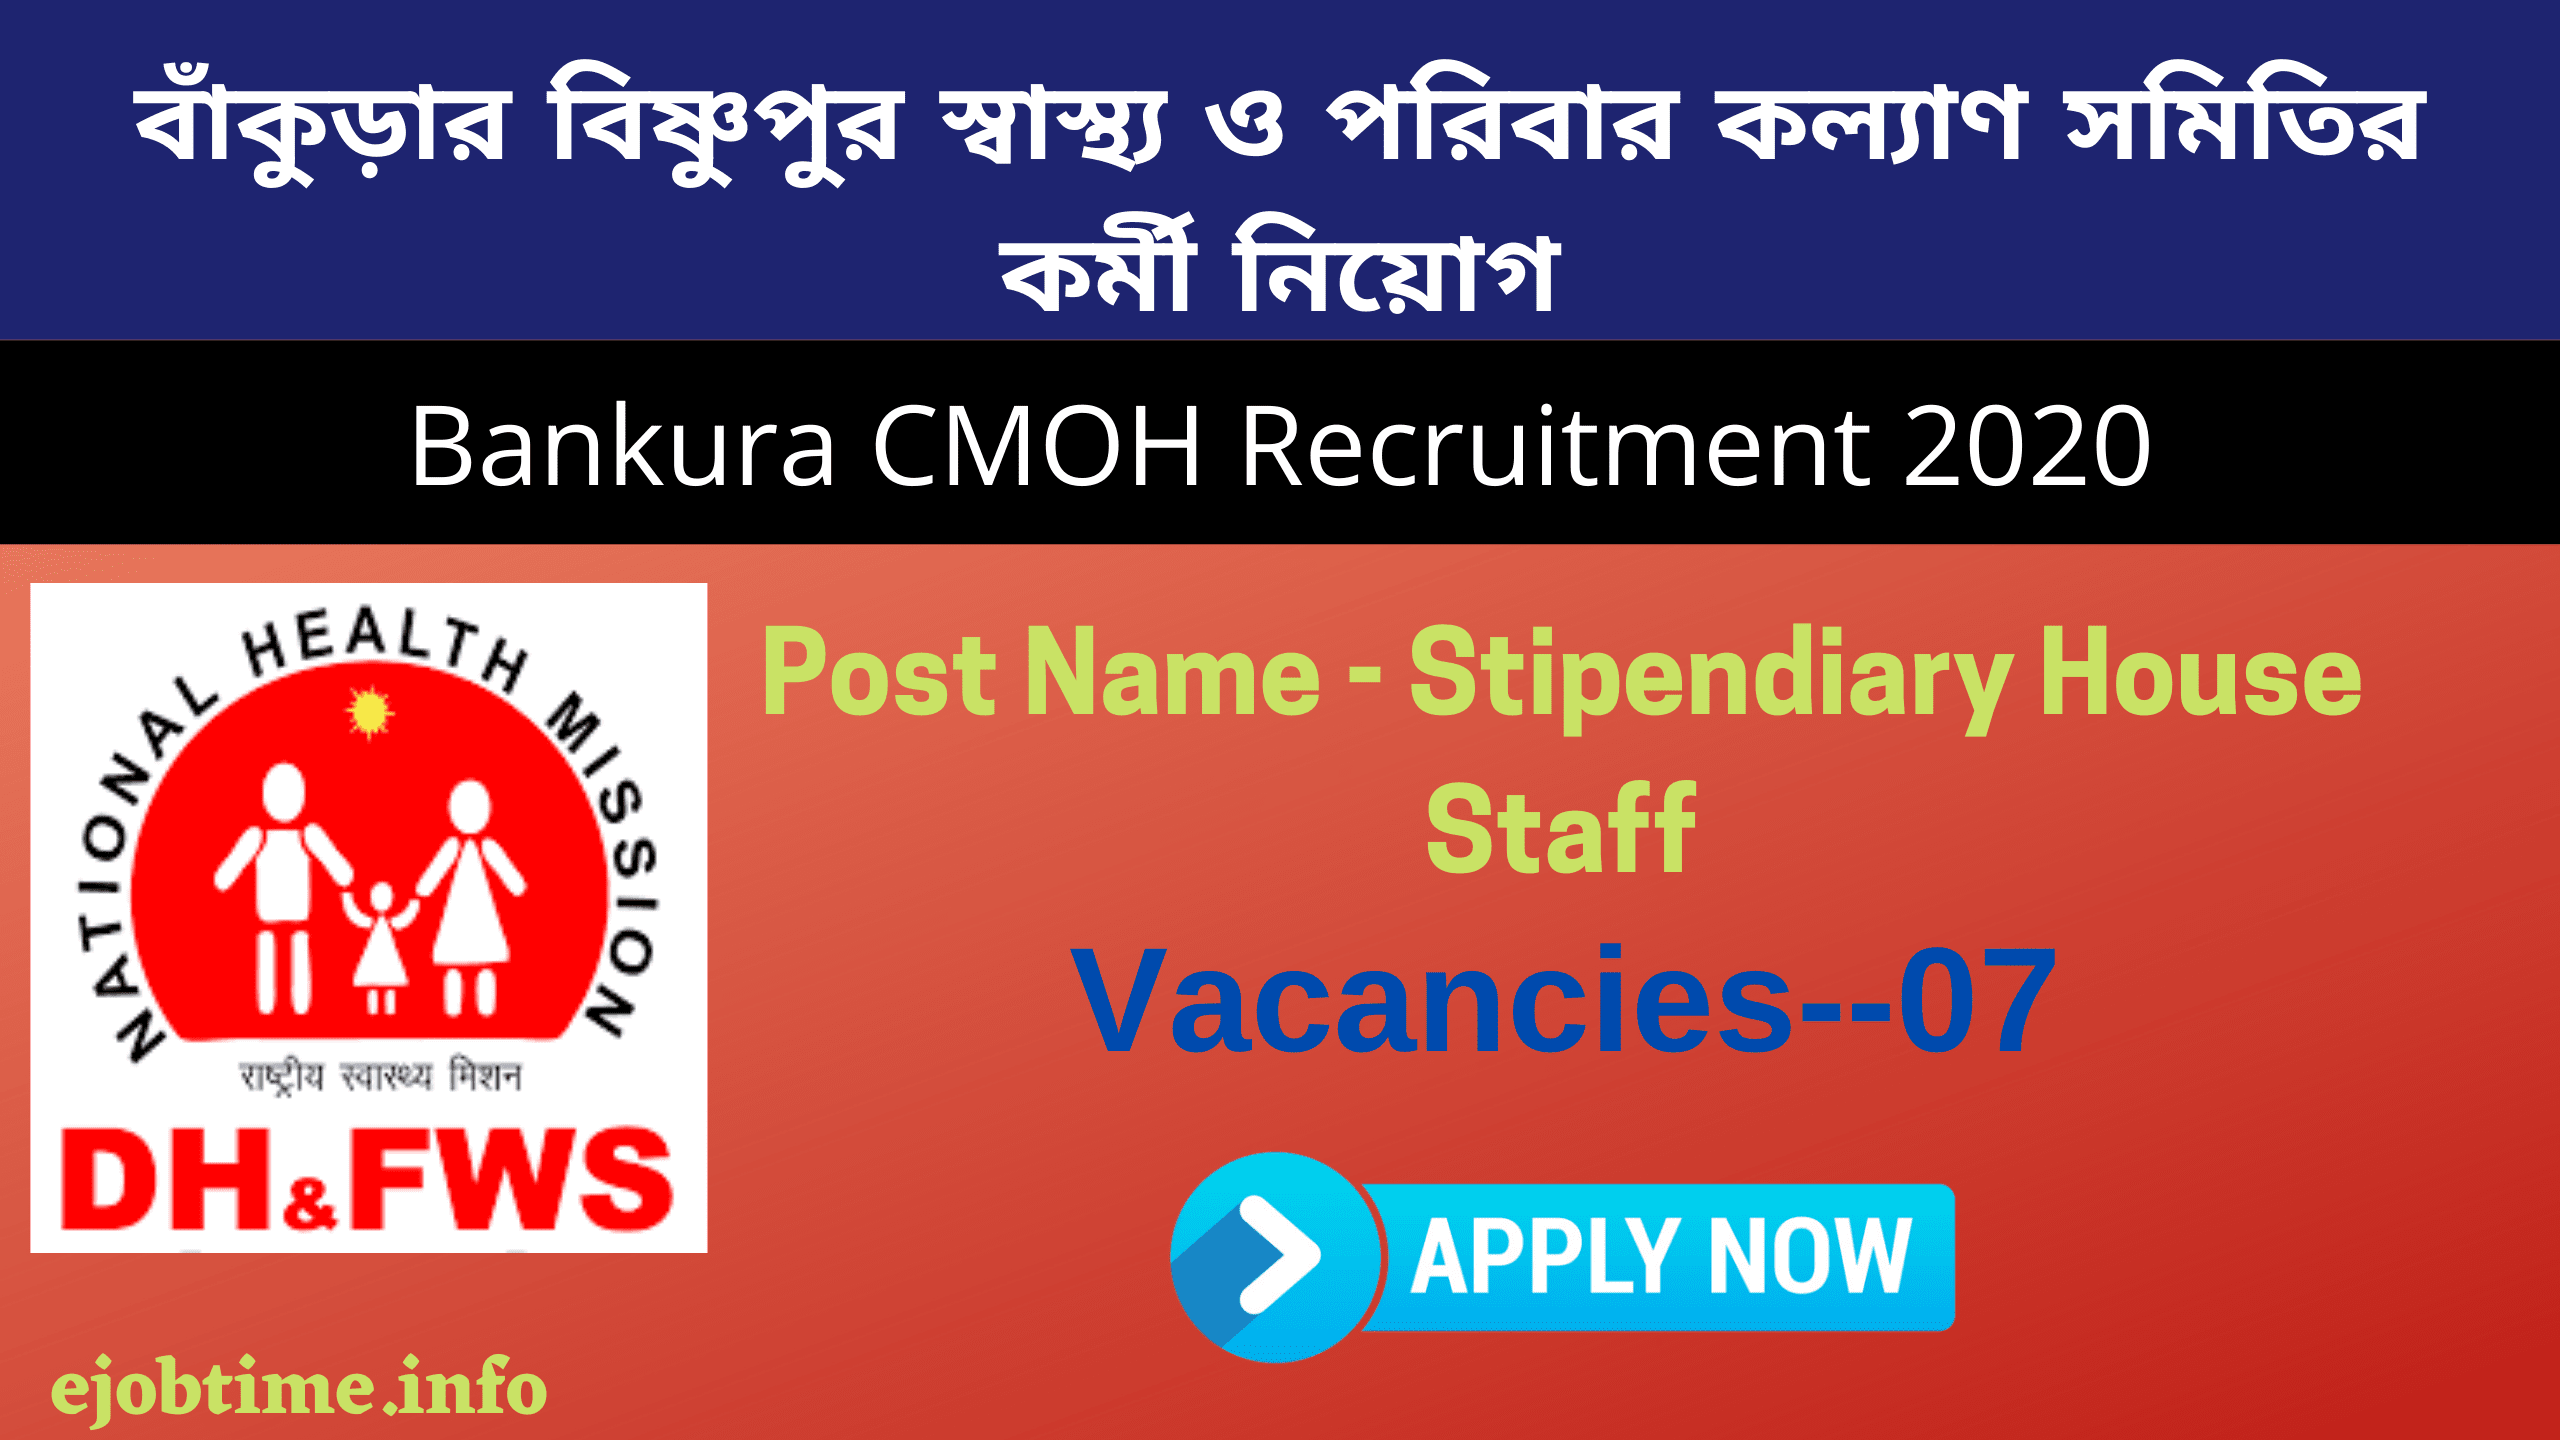 Bankura CMOH Recruitment 2020-